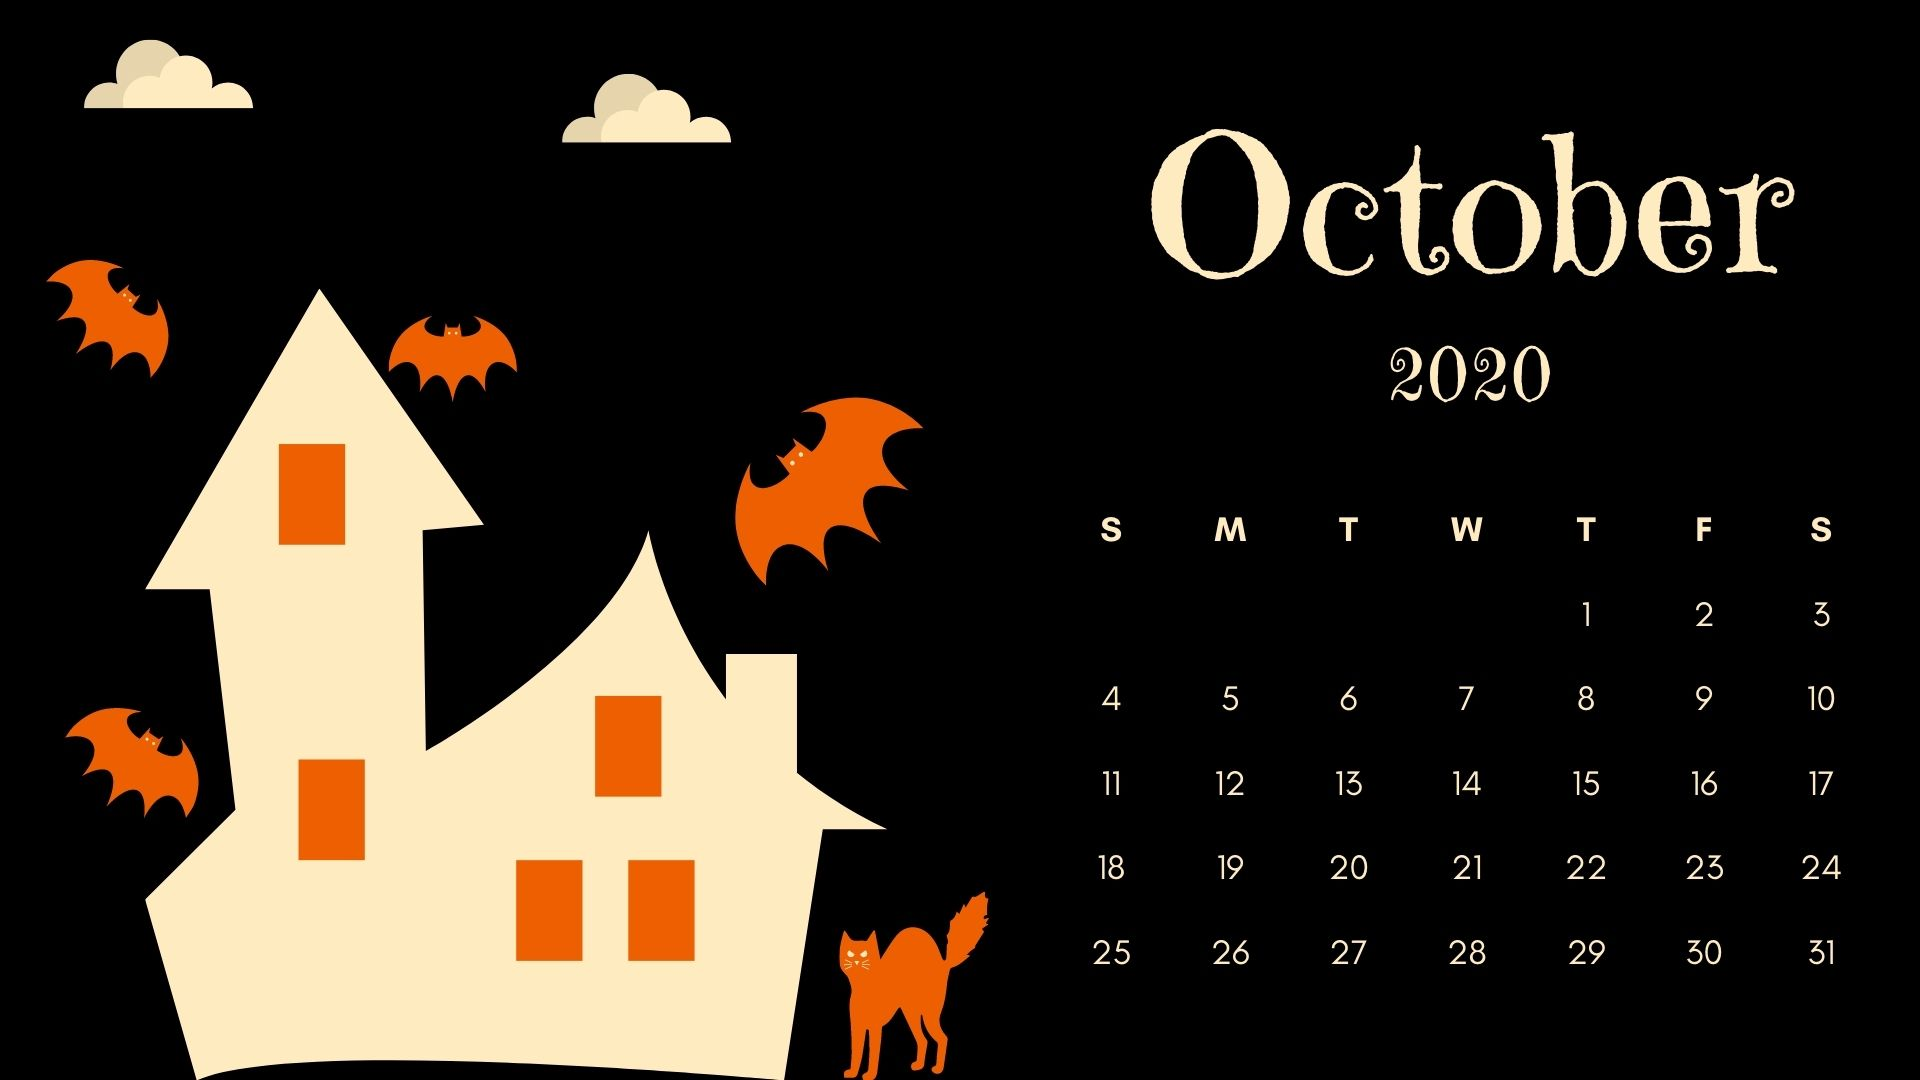 october wallpaper images